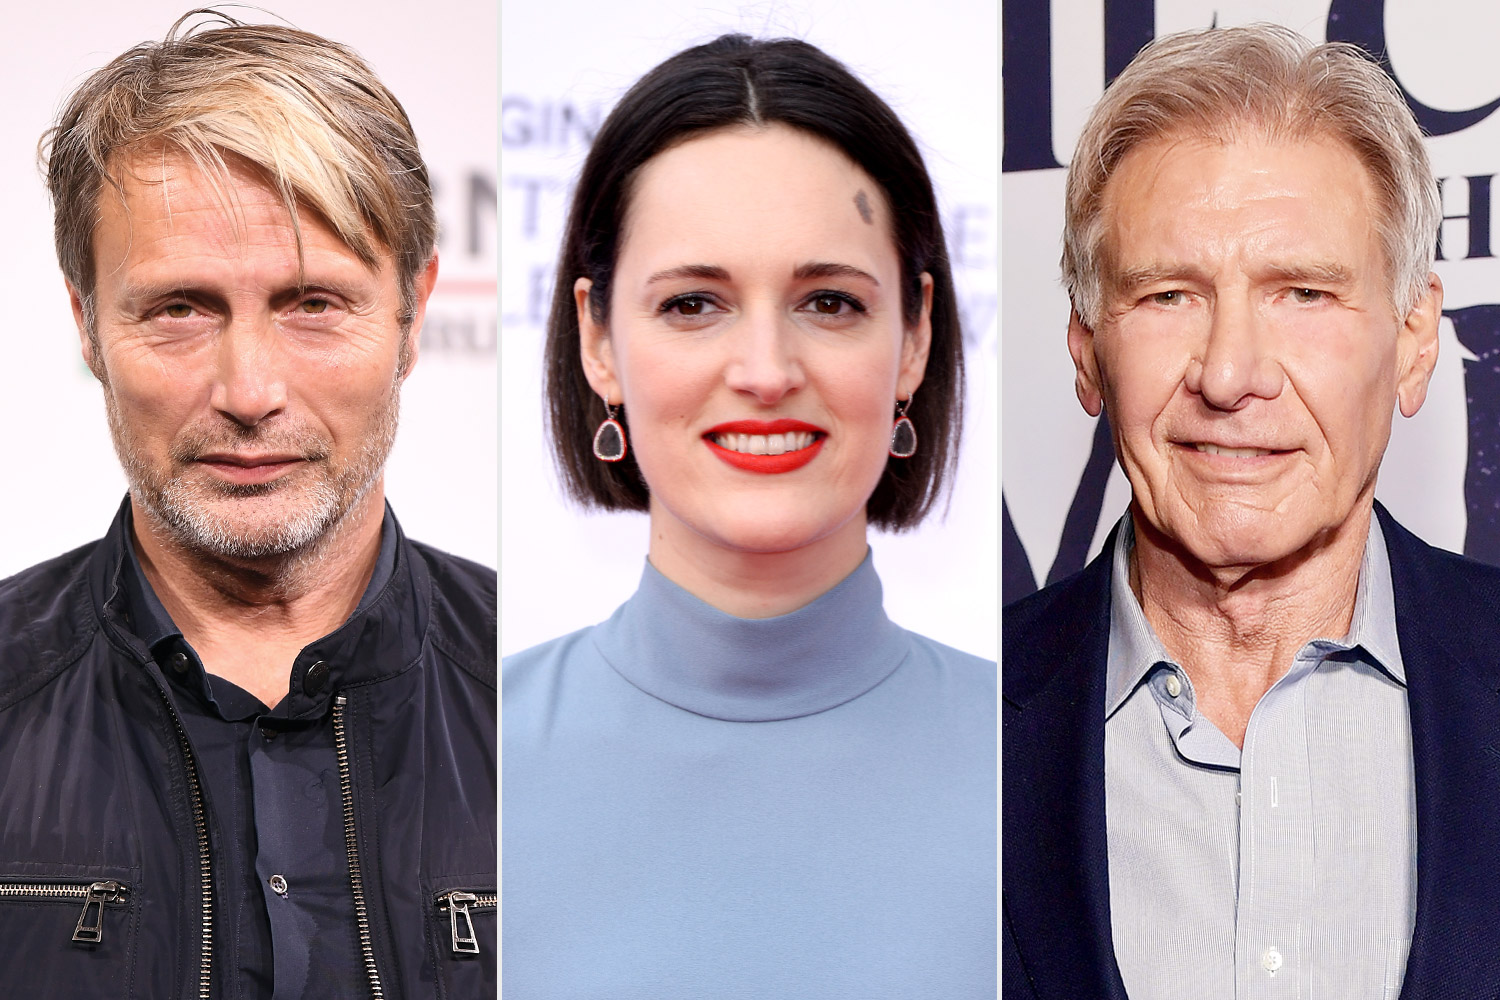 Mads Mikkelsen, Phoebe Waller-Bridge and Harrison Ford